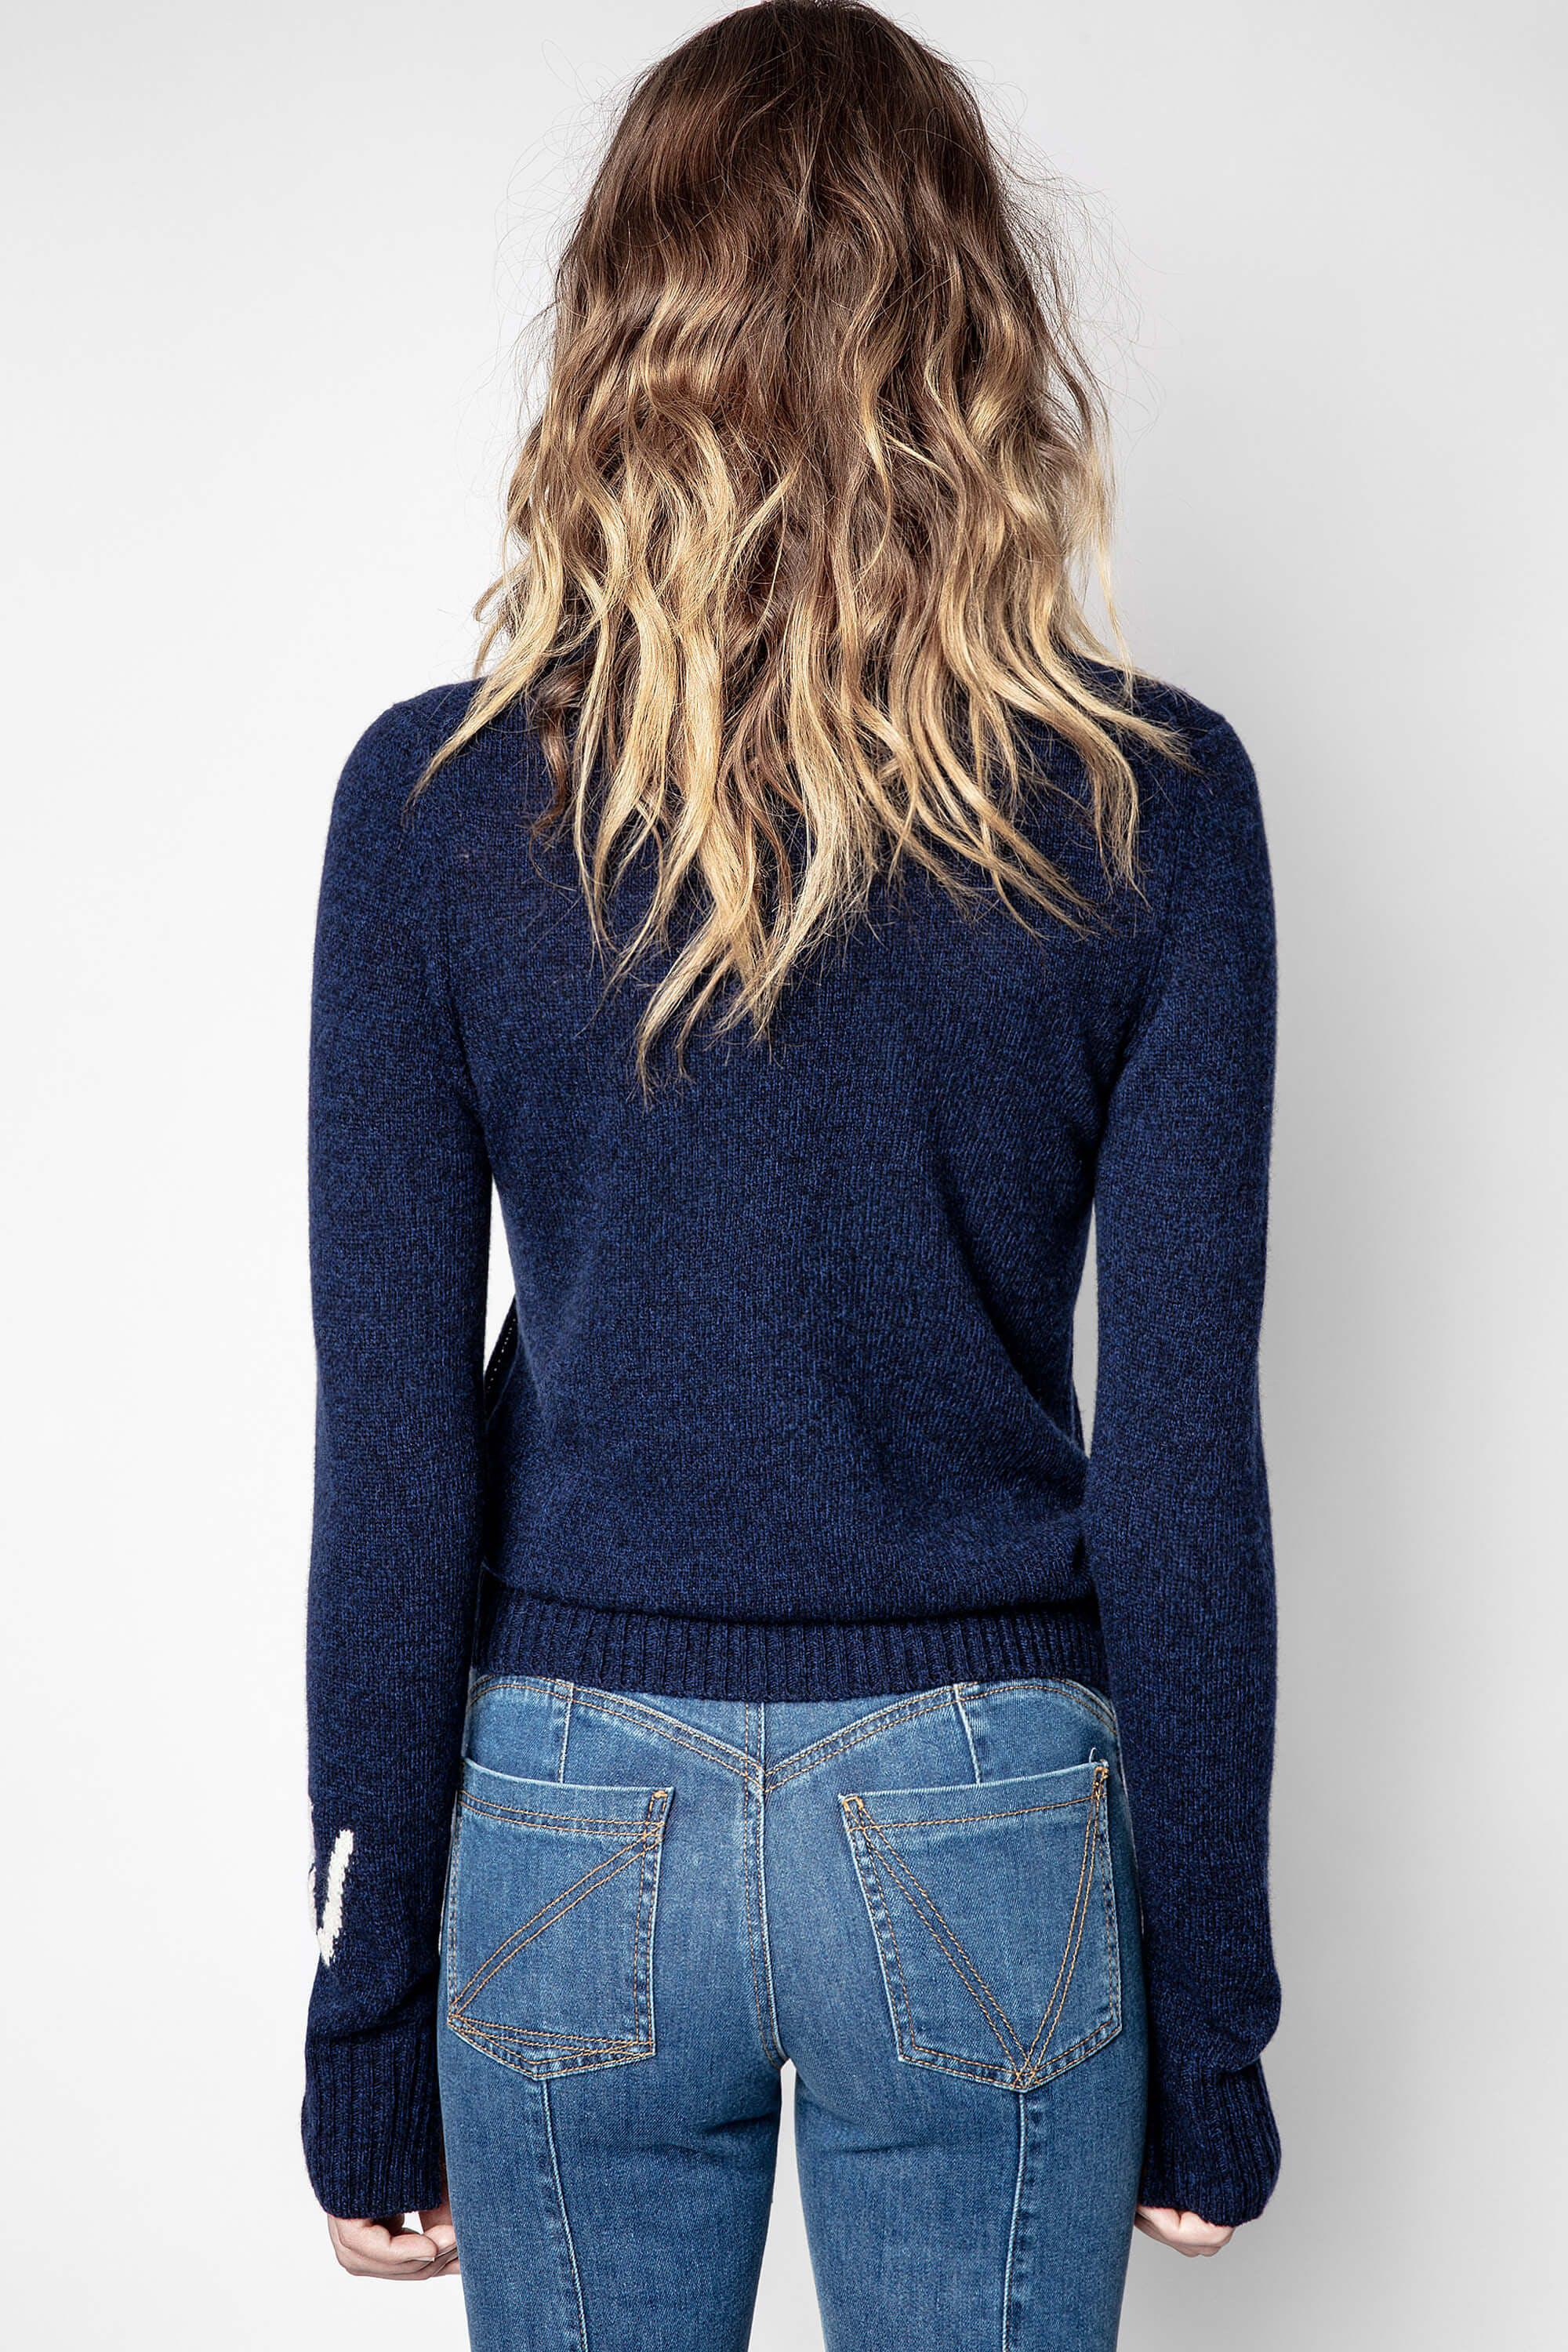 Source Recycled Cashmere Sweater 2